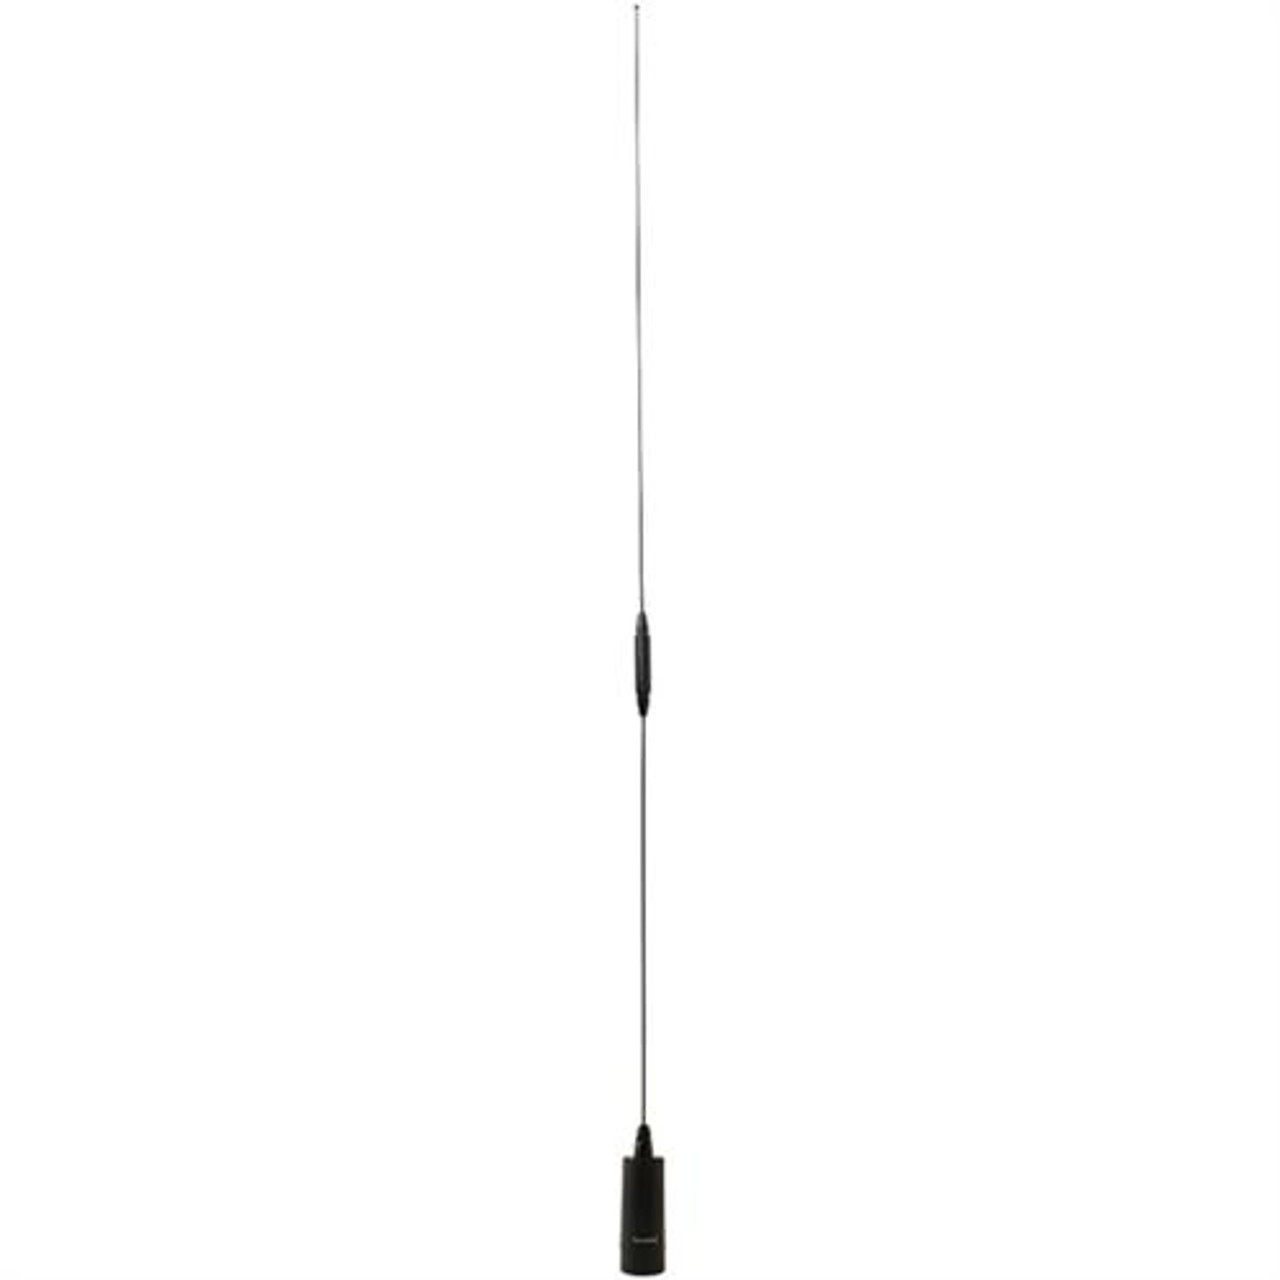 Tram Dual Band NMO Antenna - Black